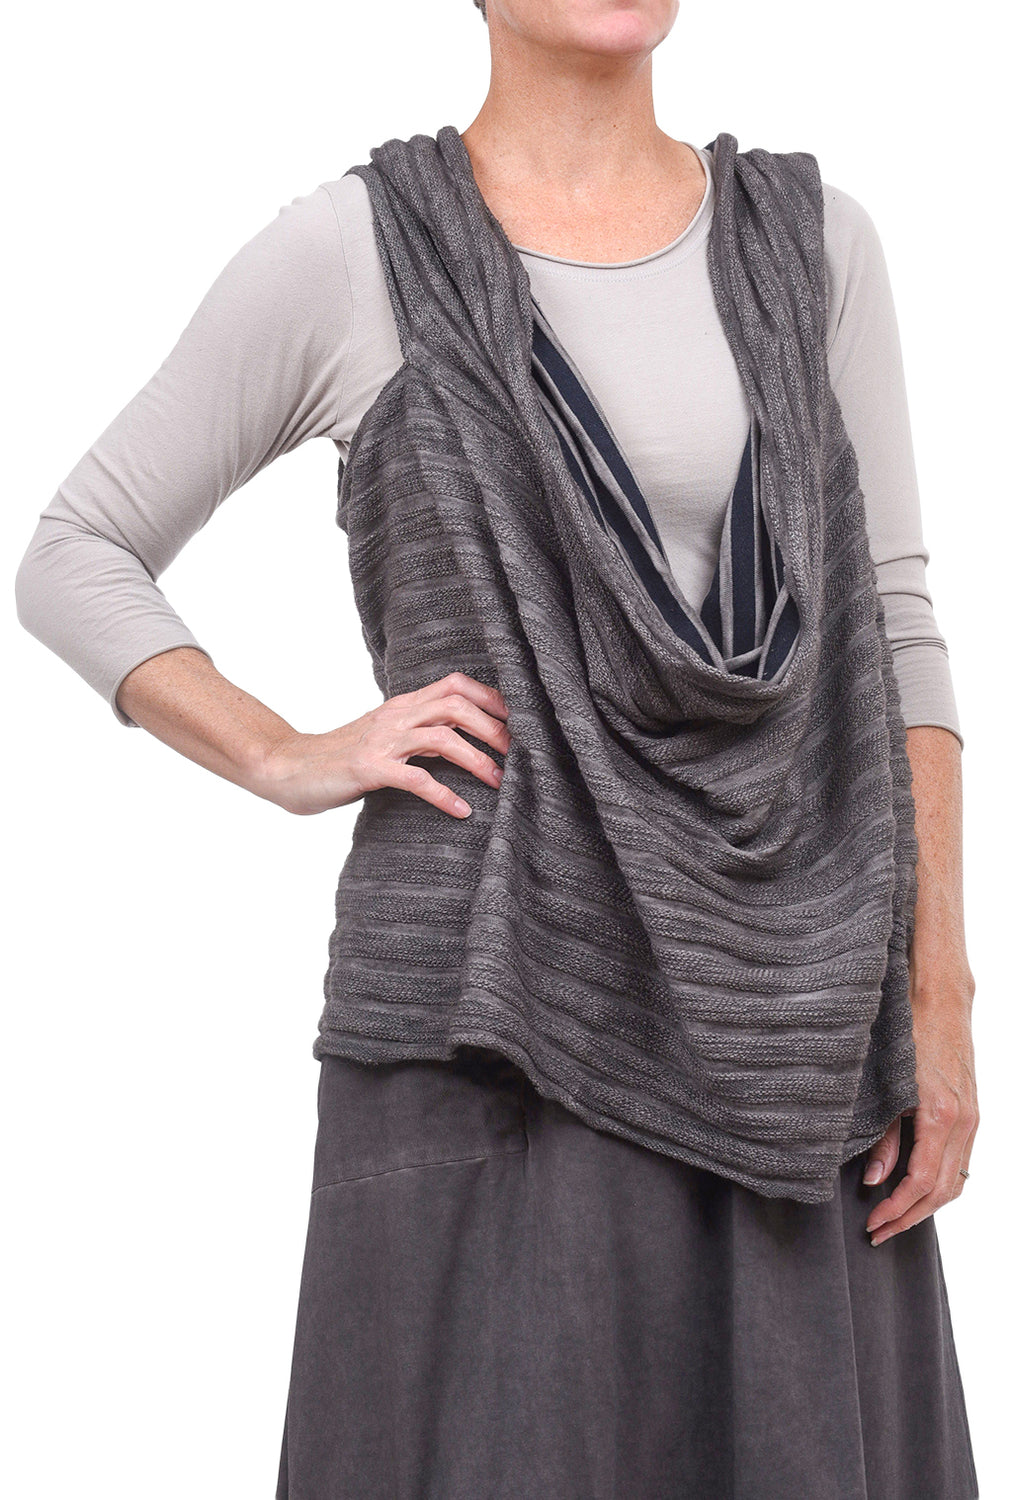 Luukaa Beverly Scarf Topper, Damson One Size Damson